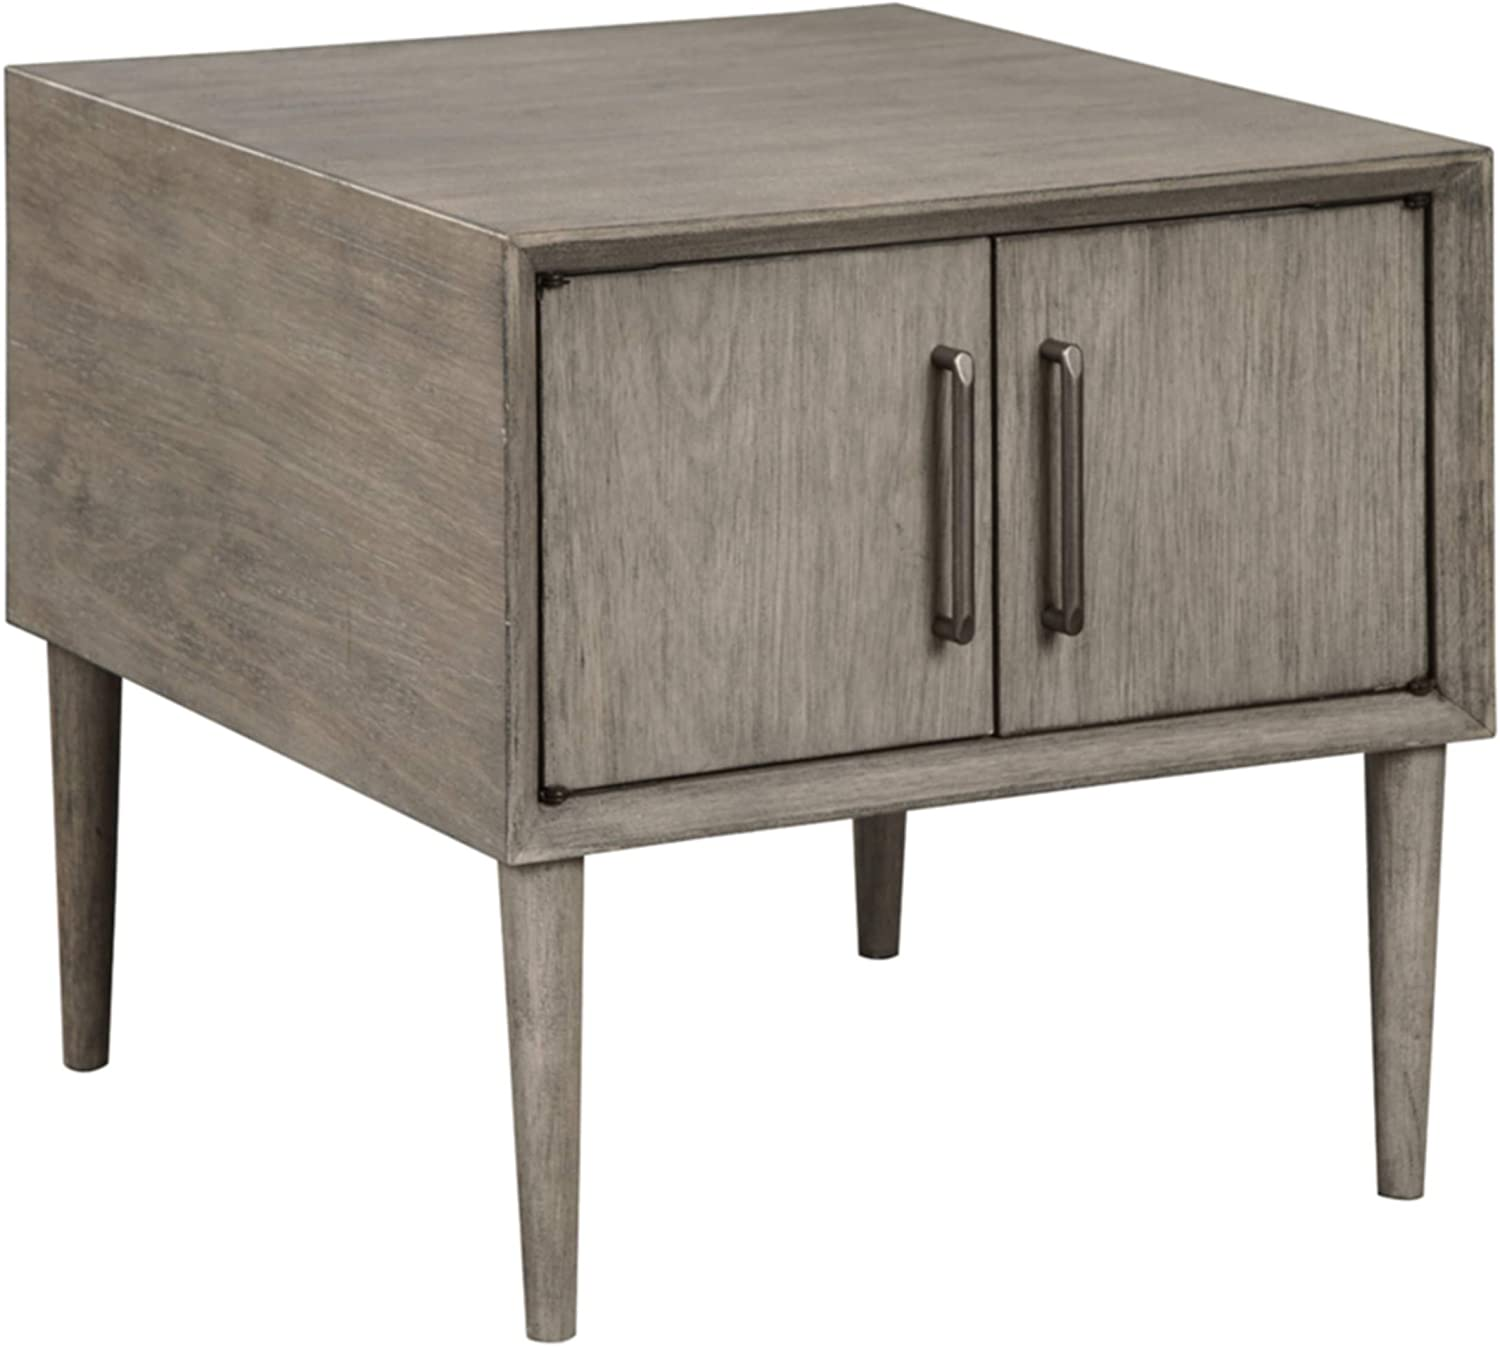 Signature Design by Ashley - Asterson End Table, Gray